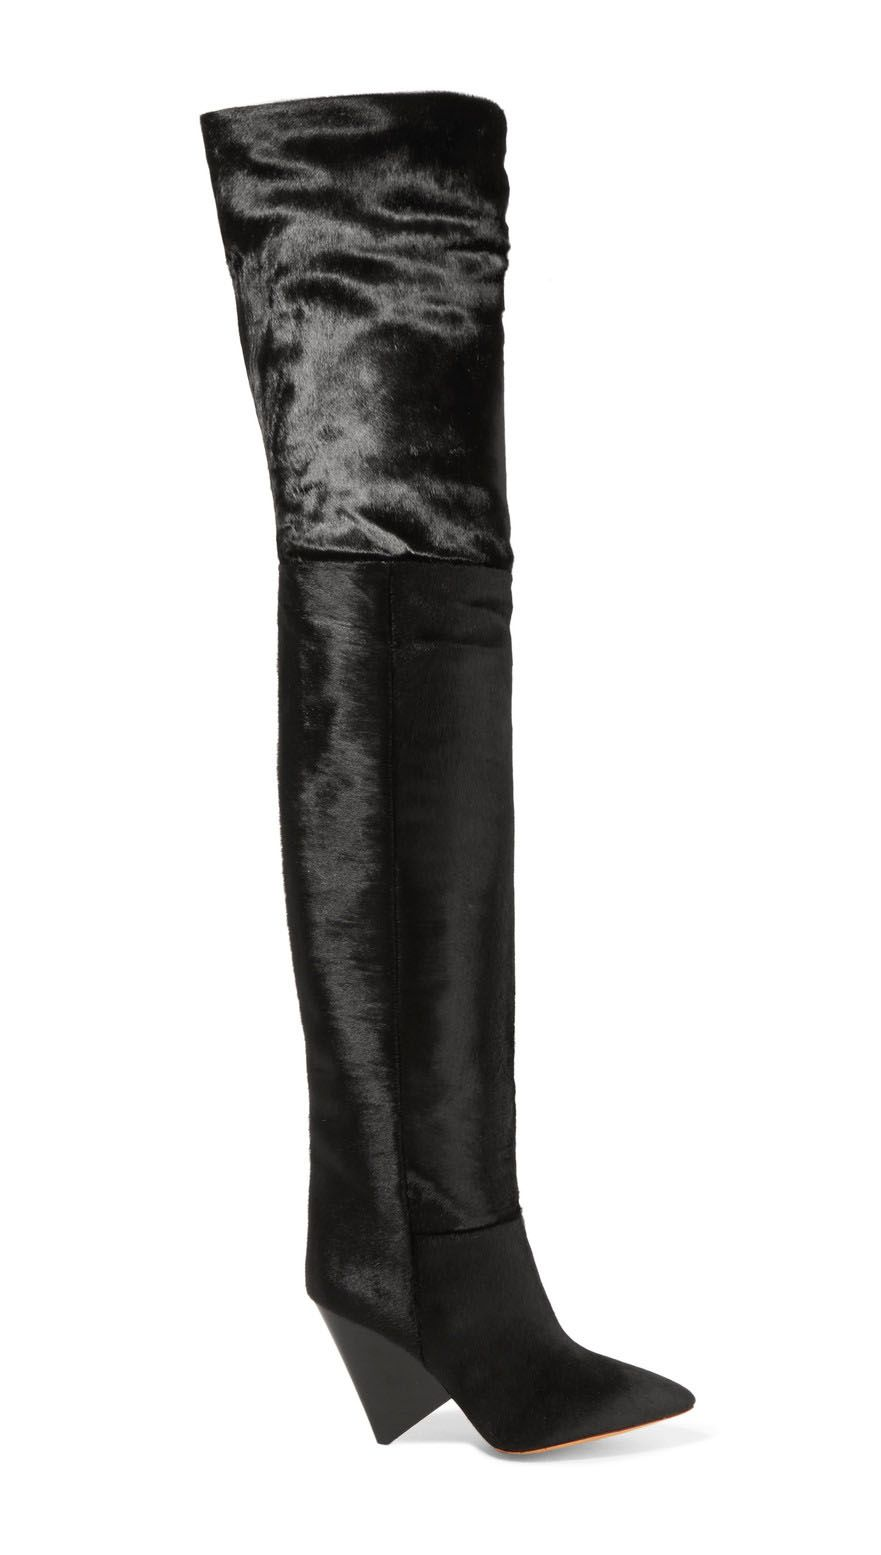 Isabel Marant Lostynn Calf Hair Over-the-Knee Boots, $2,085